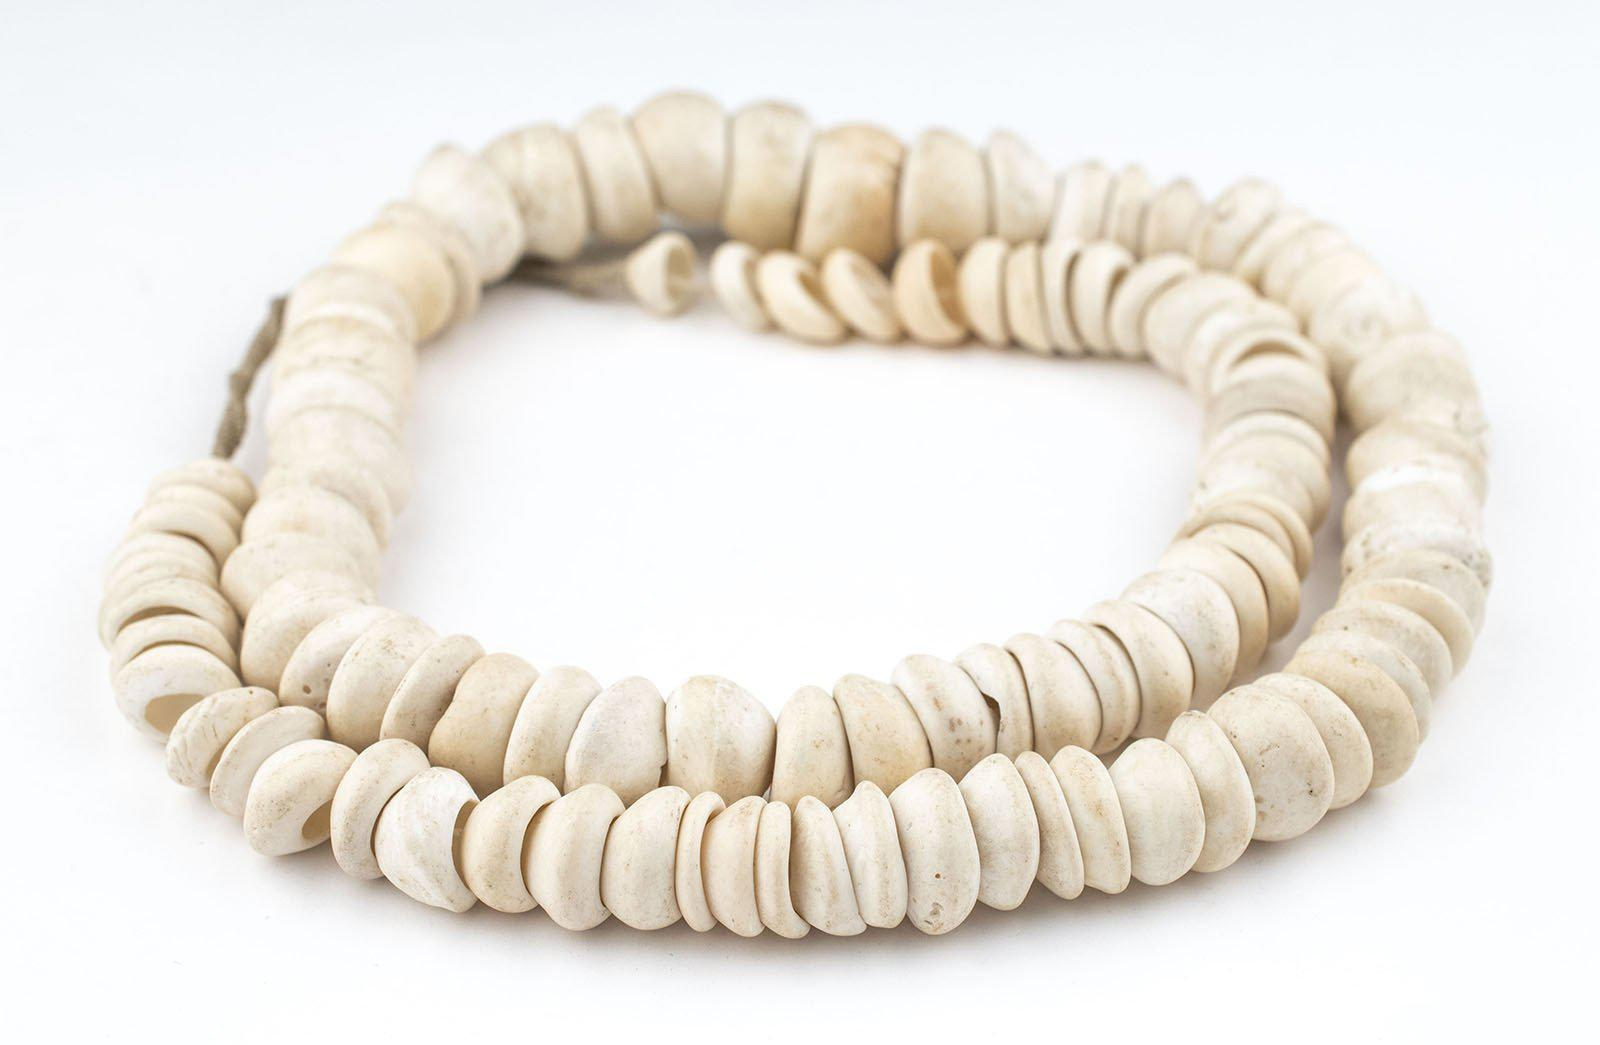 Natural Zebra Shell Beads 13mm Black and White Unusual 16 Inch Strand